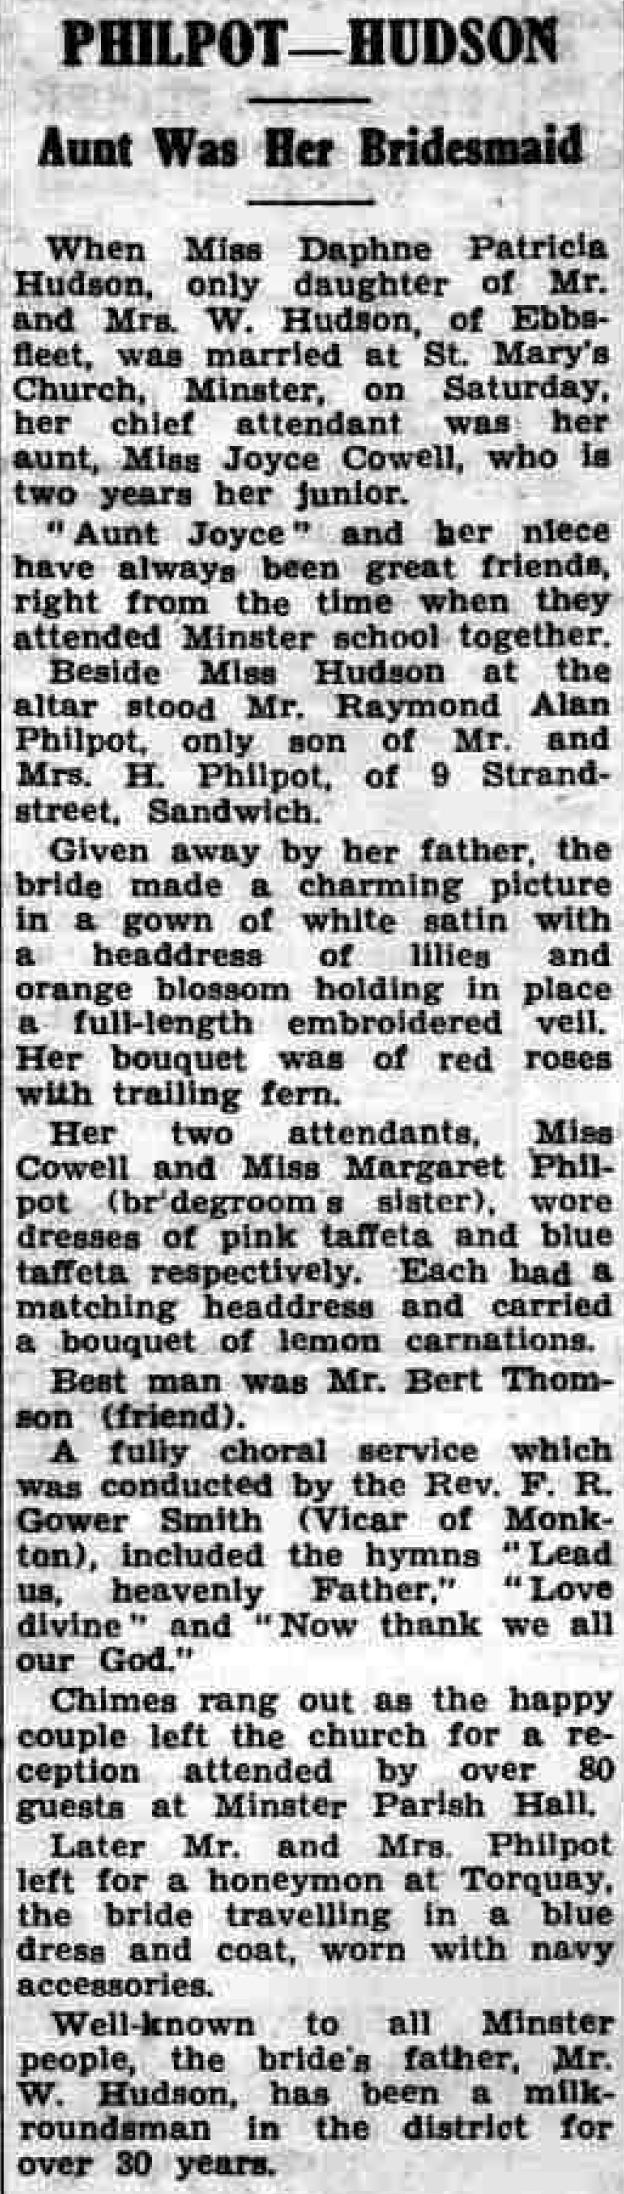 Thanet Advertiser 6 Oct 1950